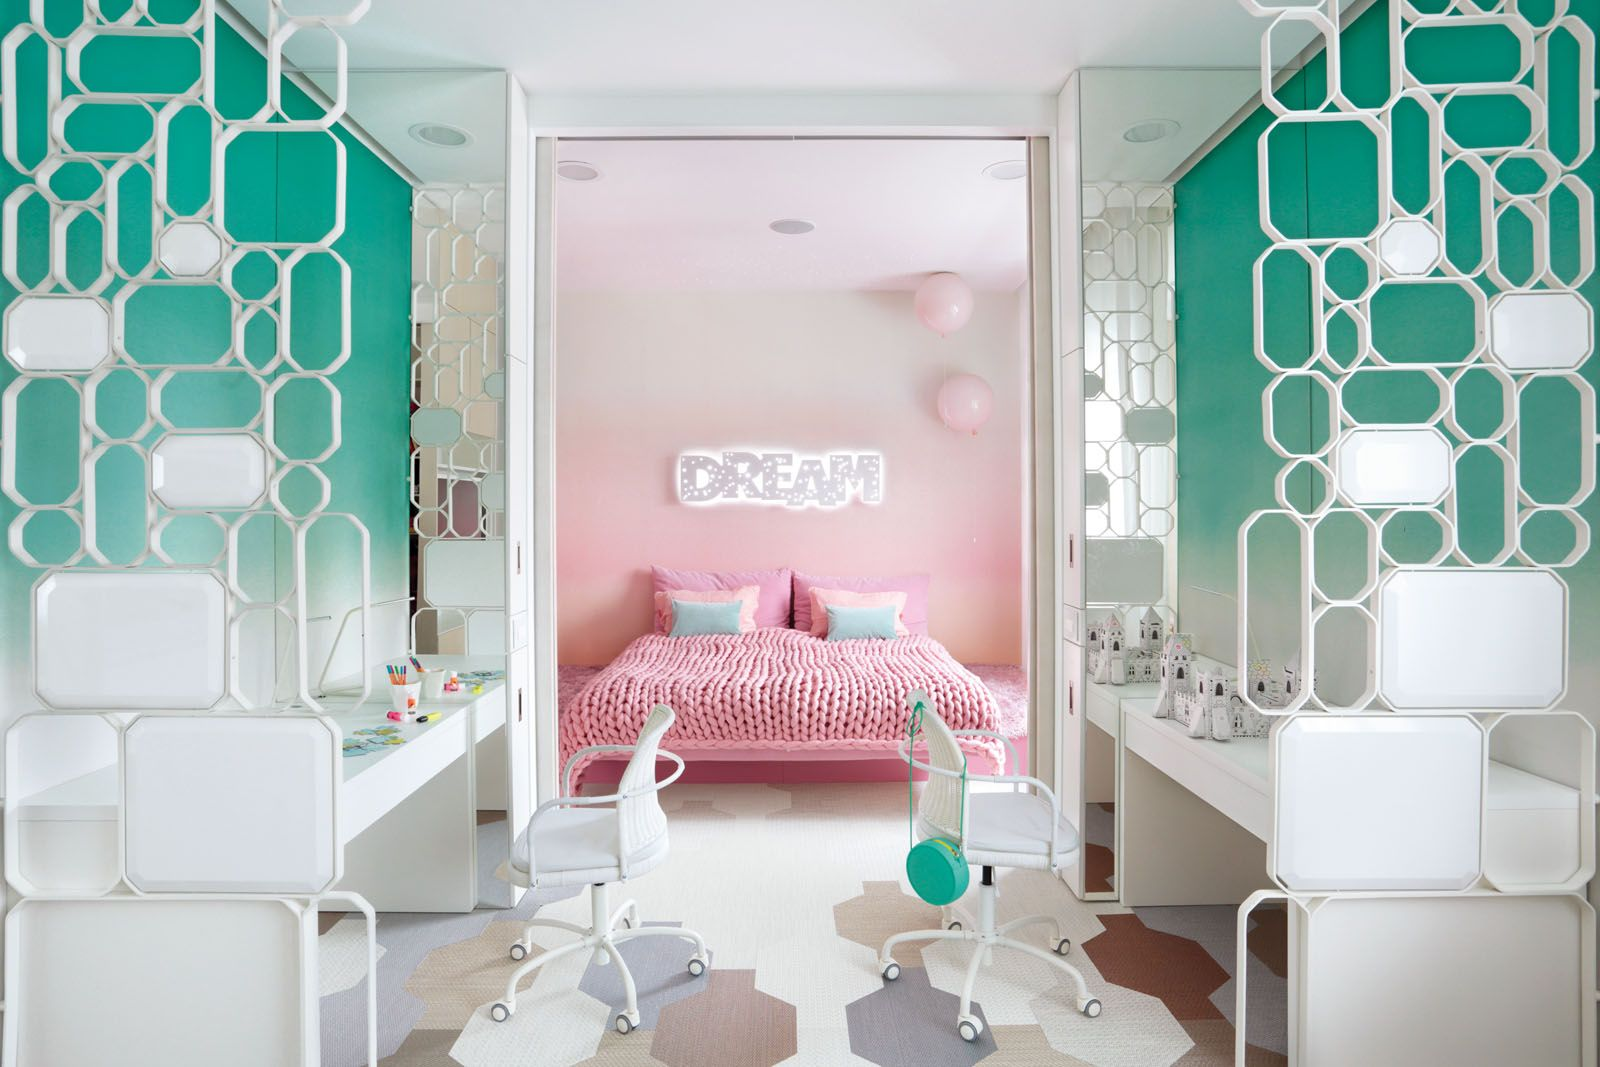 The Memory lamps from Brokis add a whimsical touch to the daughters' bedroom